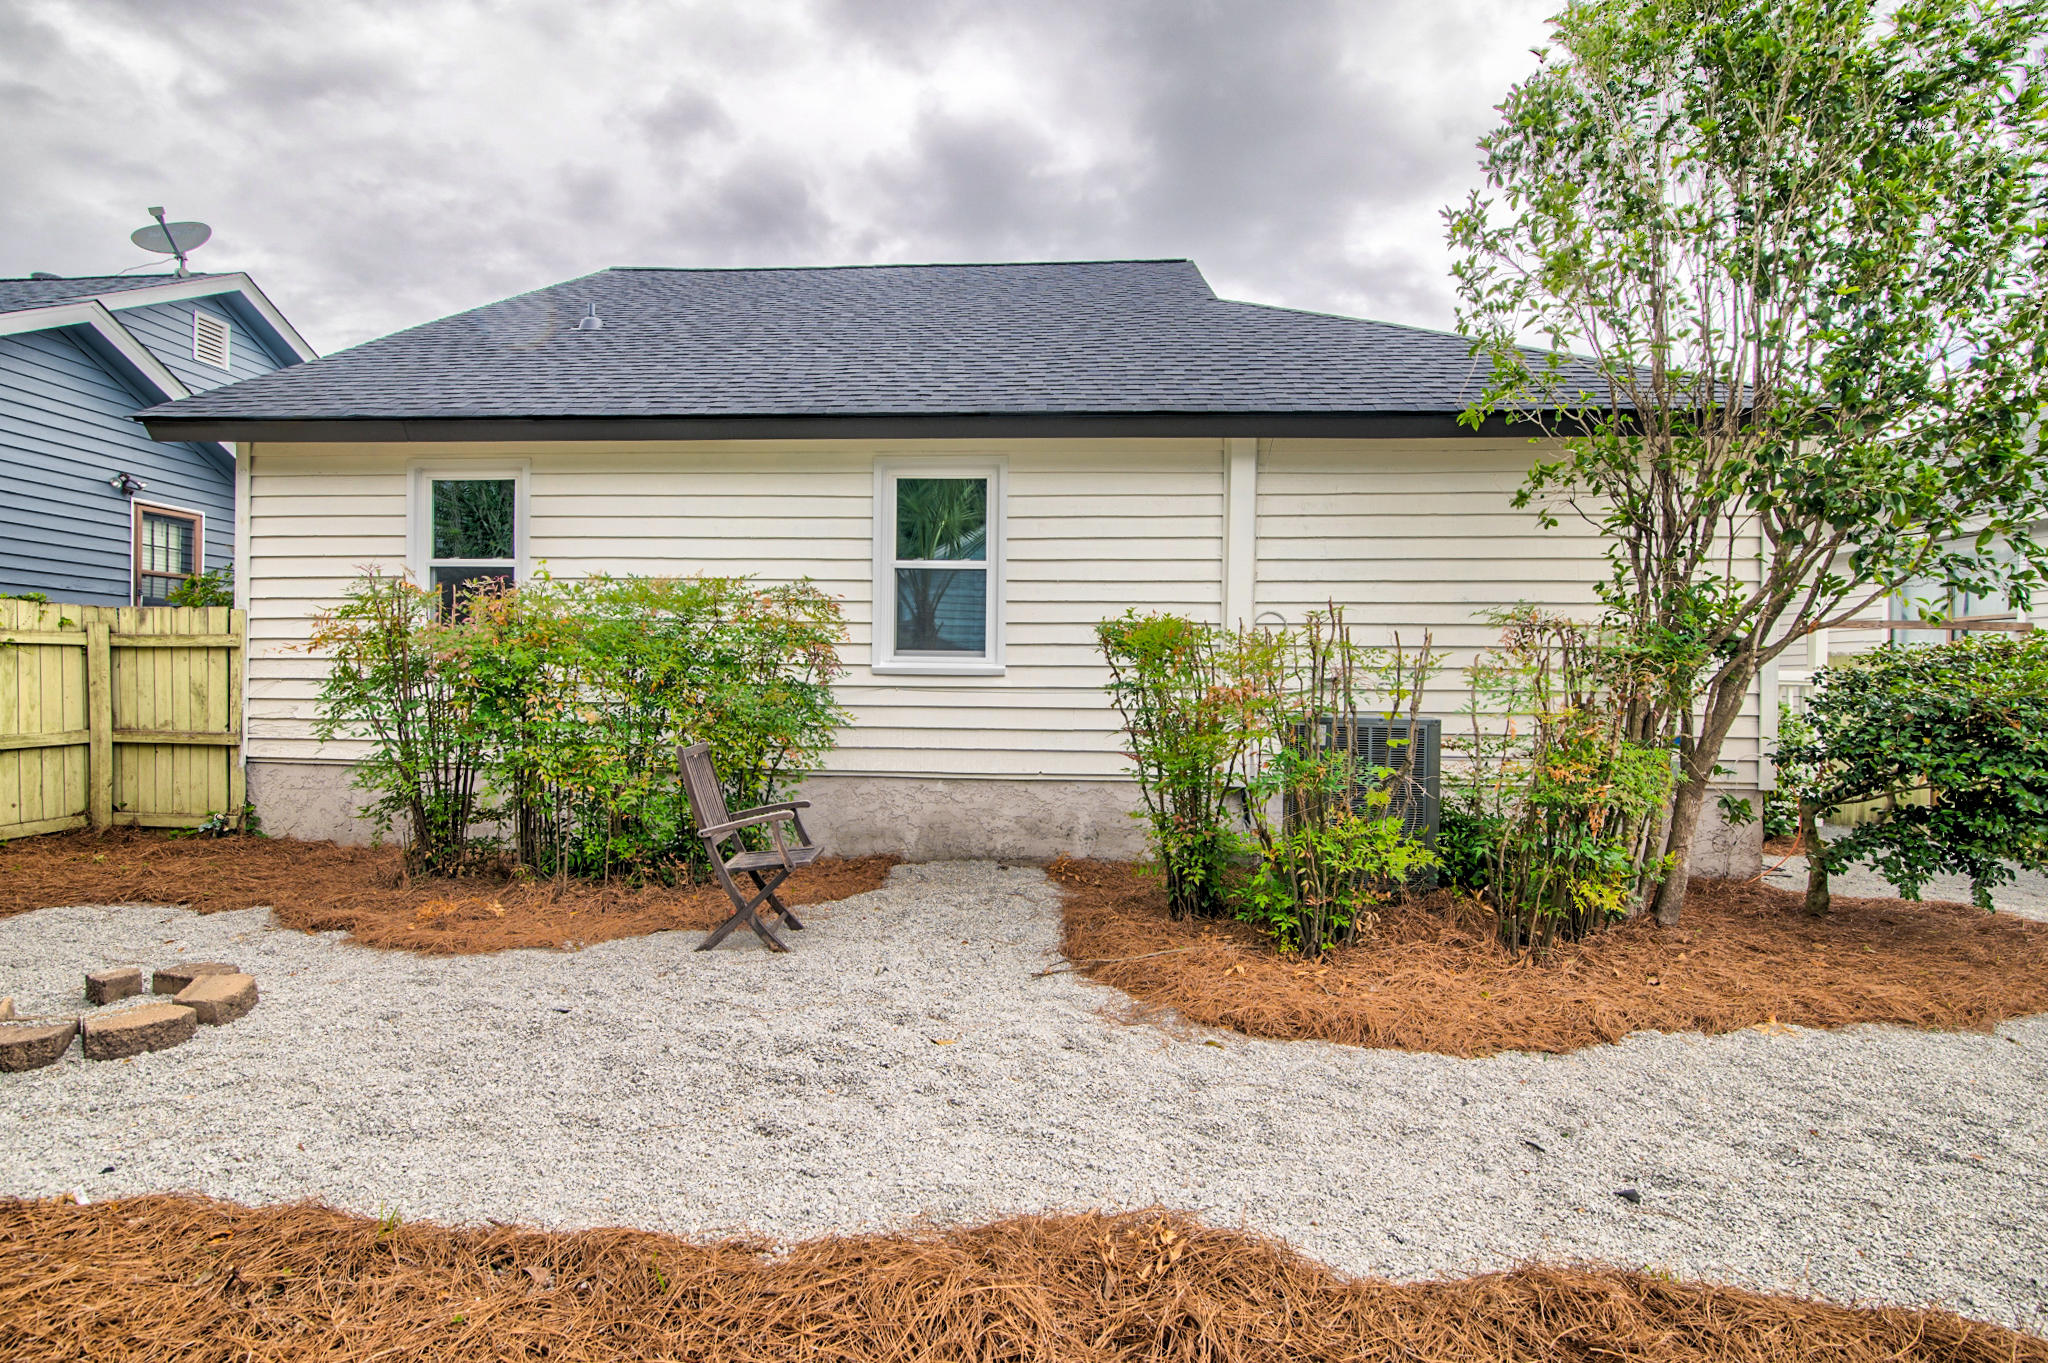 Pirates Cove Homes For Sale - 1519 Privateer, Mount Pleasant, SC - 3